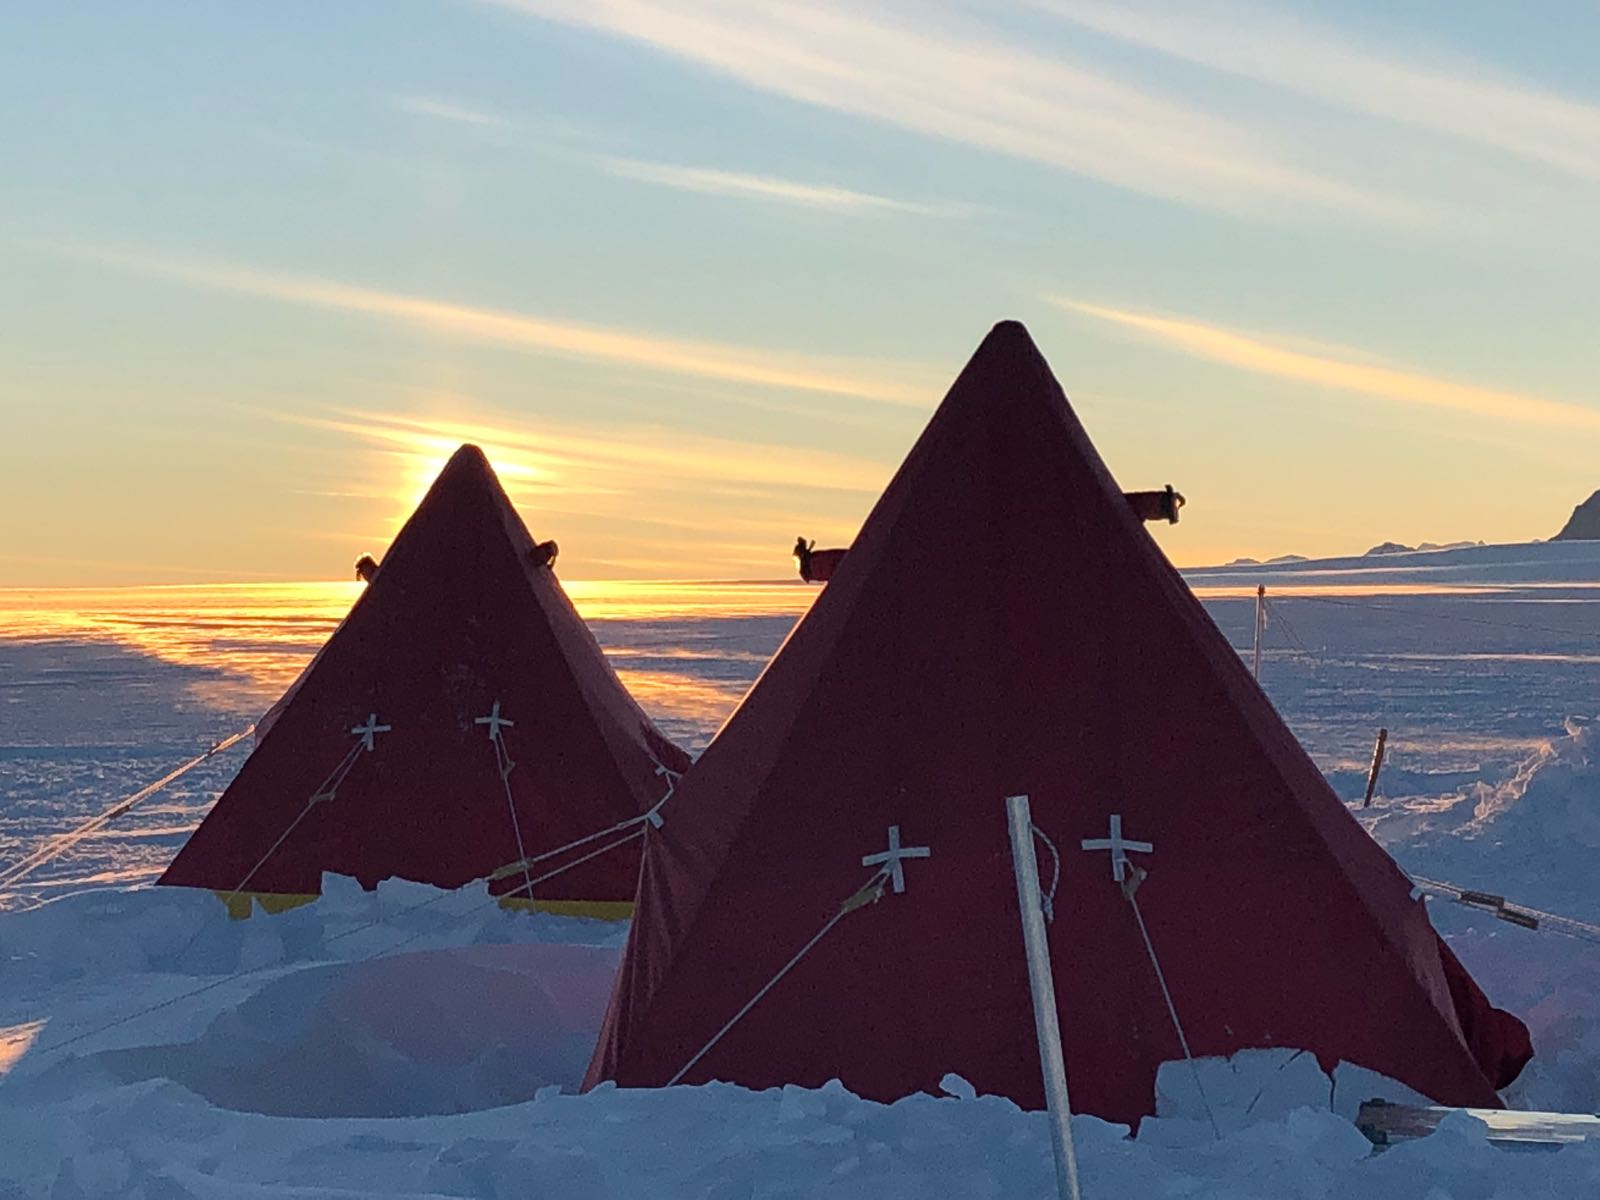 Tents in sunset